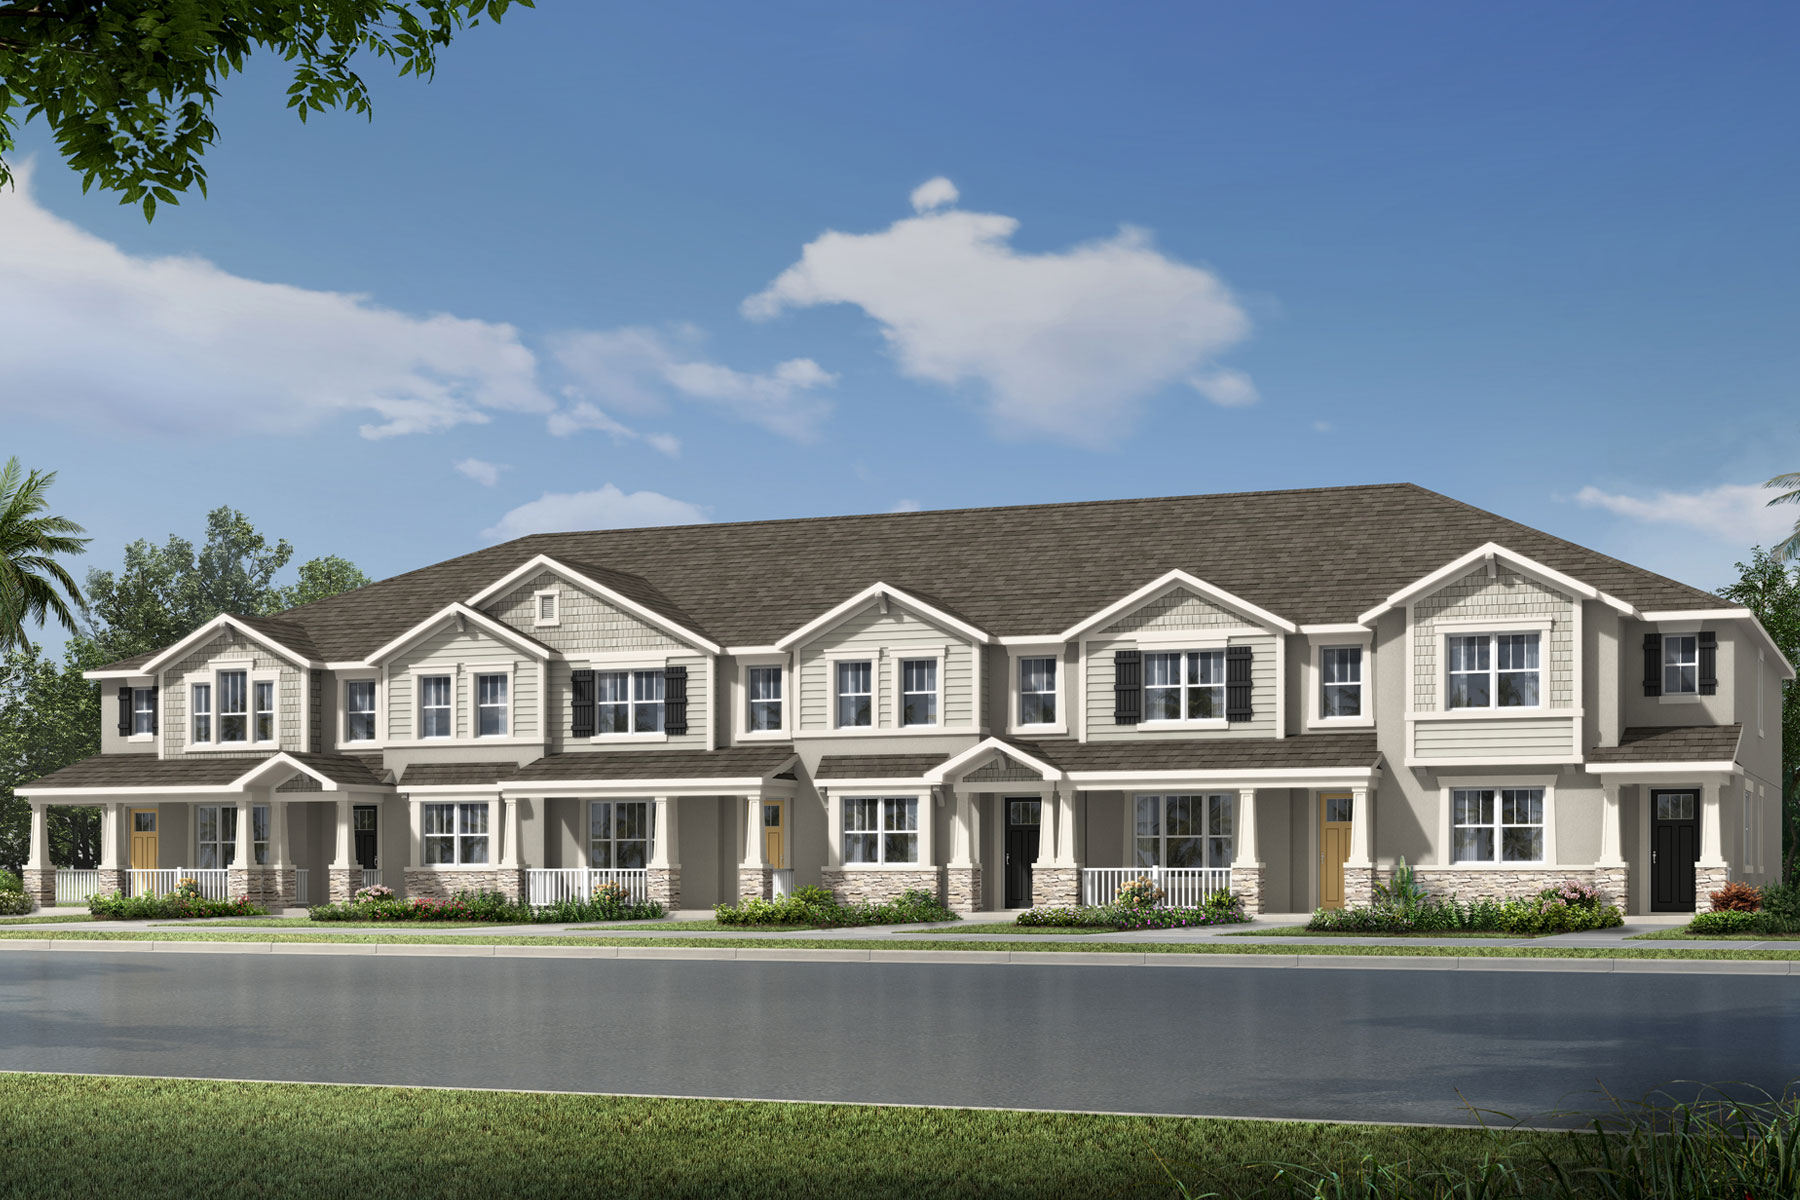 Minneola Plan TownHomes at Legado in Windermere Florida by Mattamy Homes